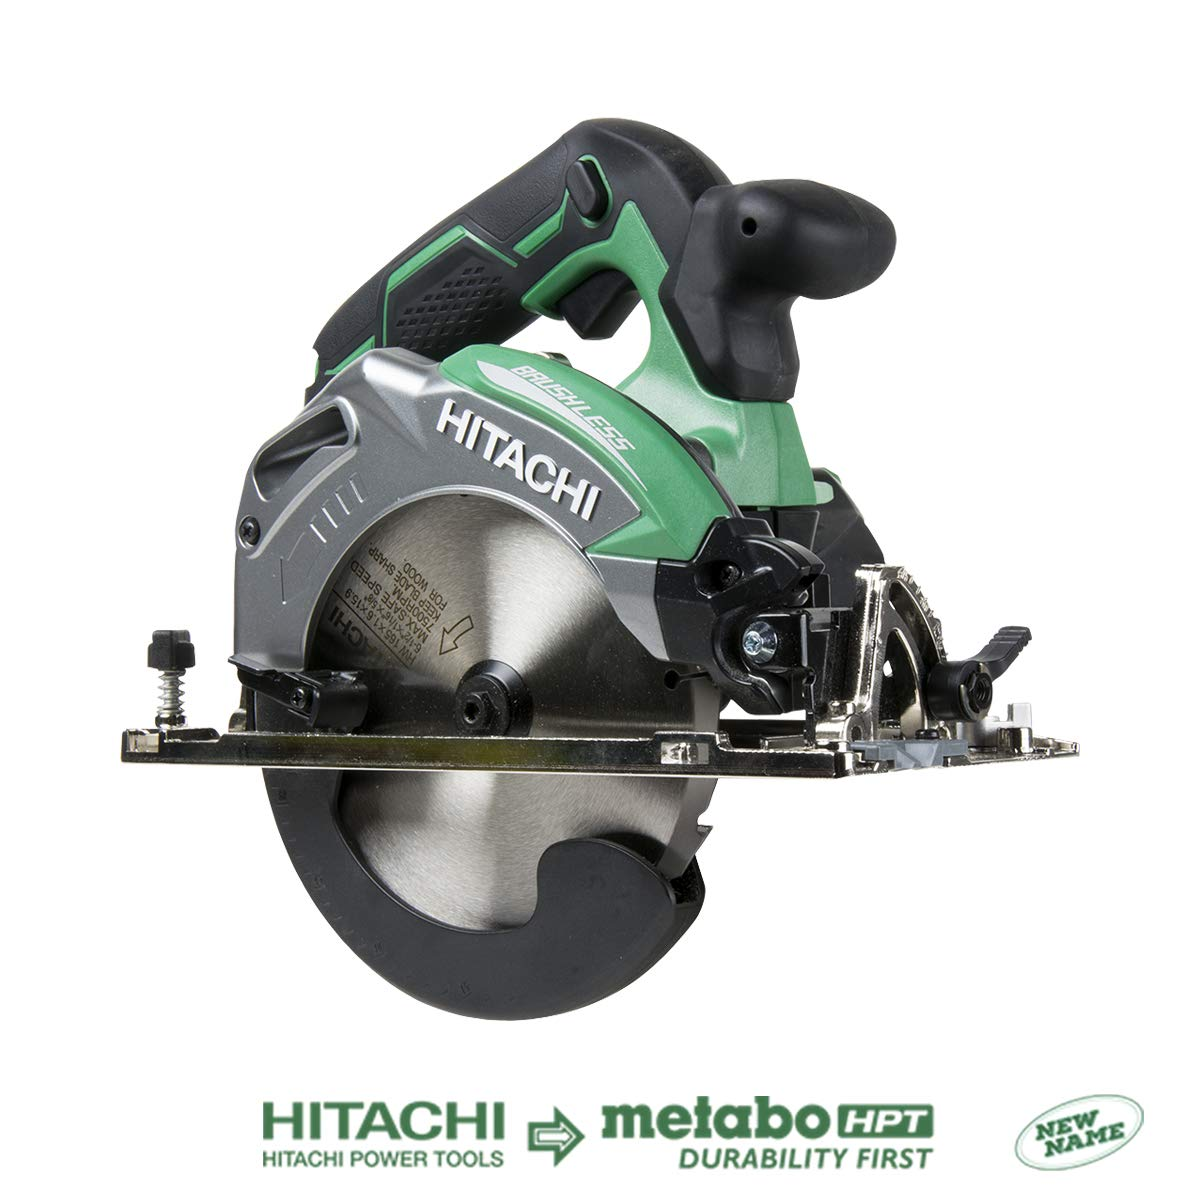 Hitachi C18DBALP4 18V Cordless Brushless Lithium Ion 6-1 2 Deep Cut Circular Saw Tool Only, No Battery